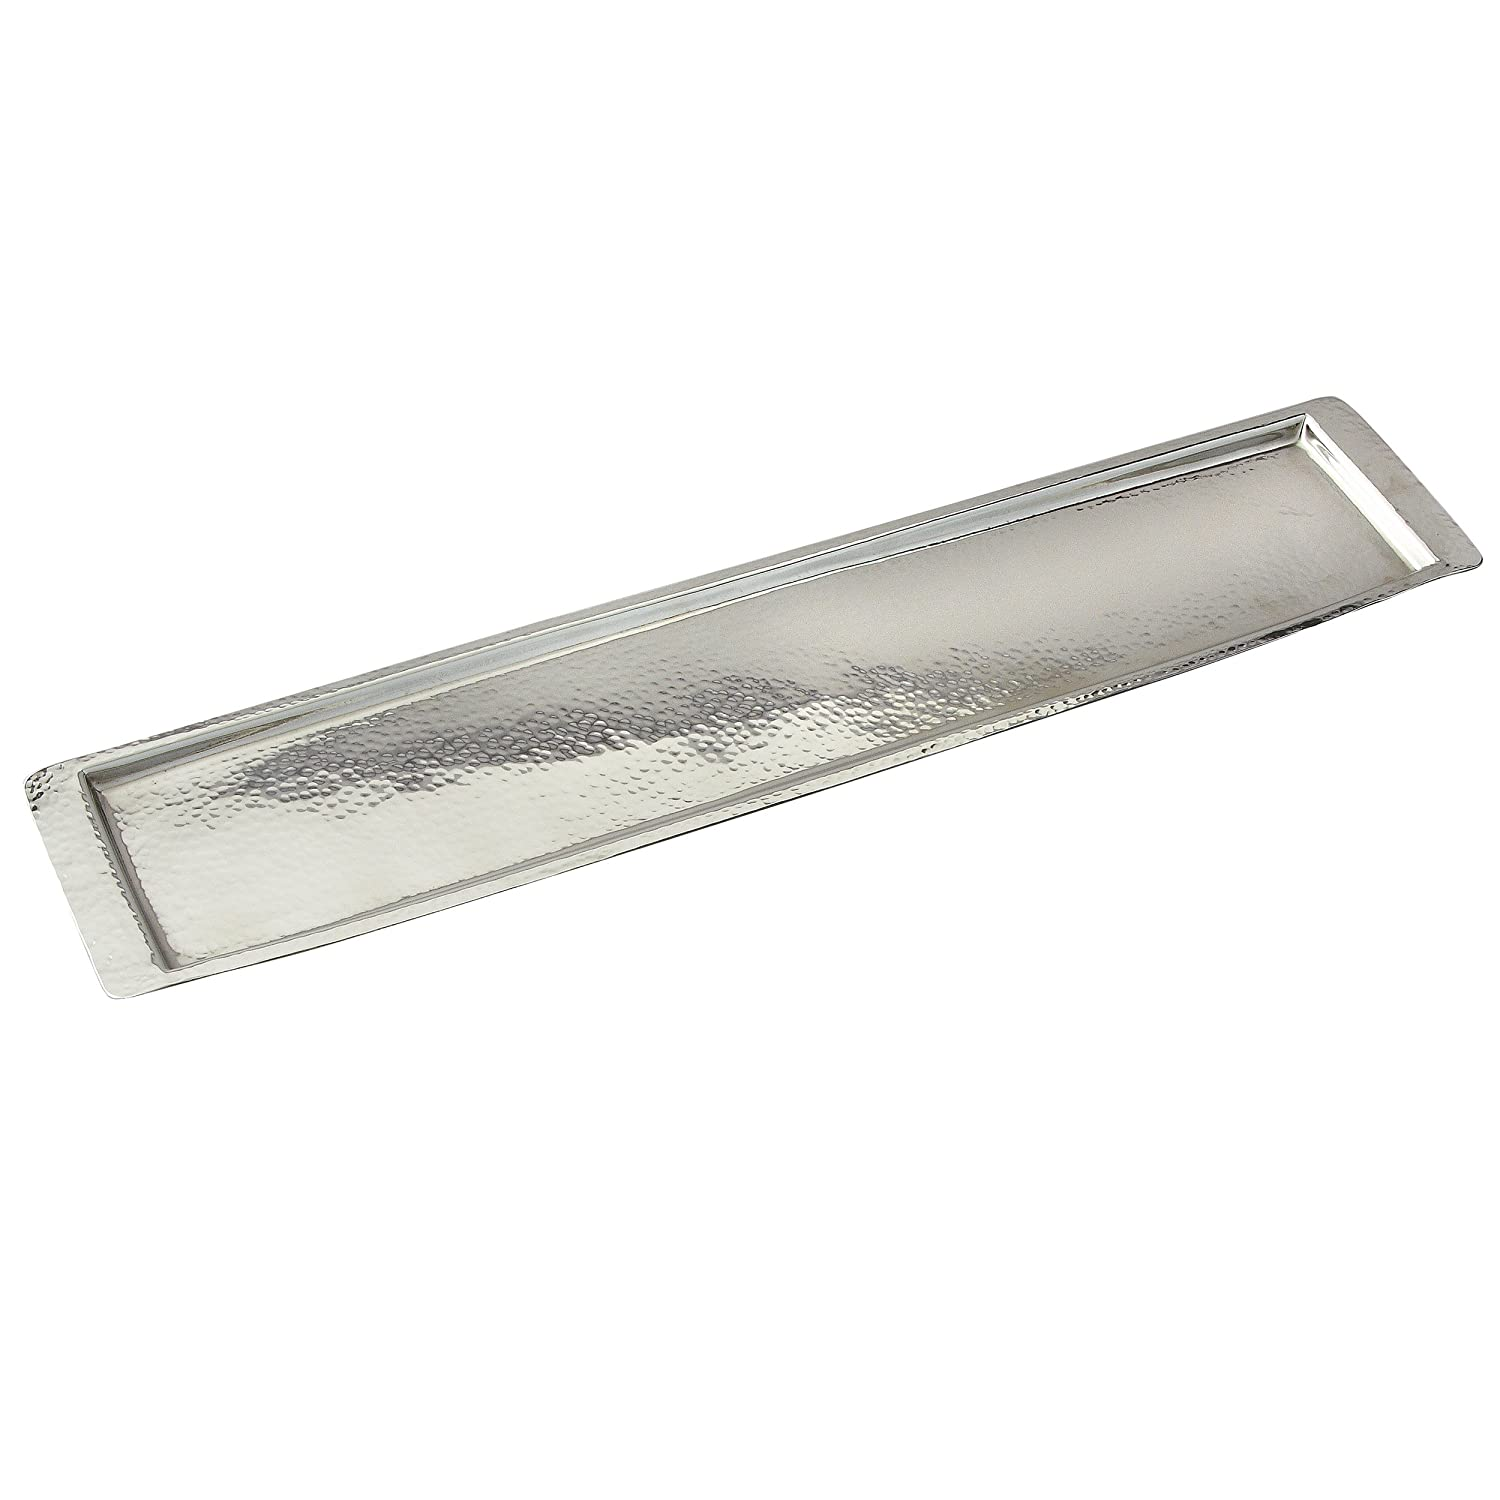 Small Elegance Stainless Steel Hammered Rectangular Tray Silver Leeber Limited USA 72374 13.75 by 4.5-Inch